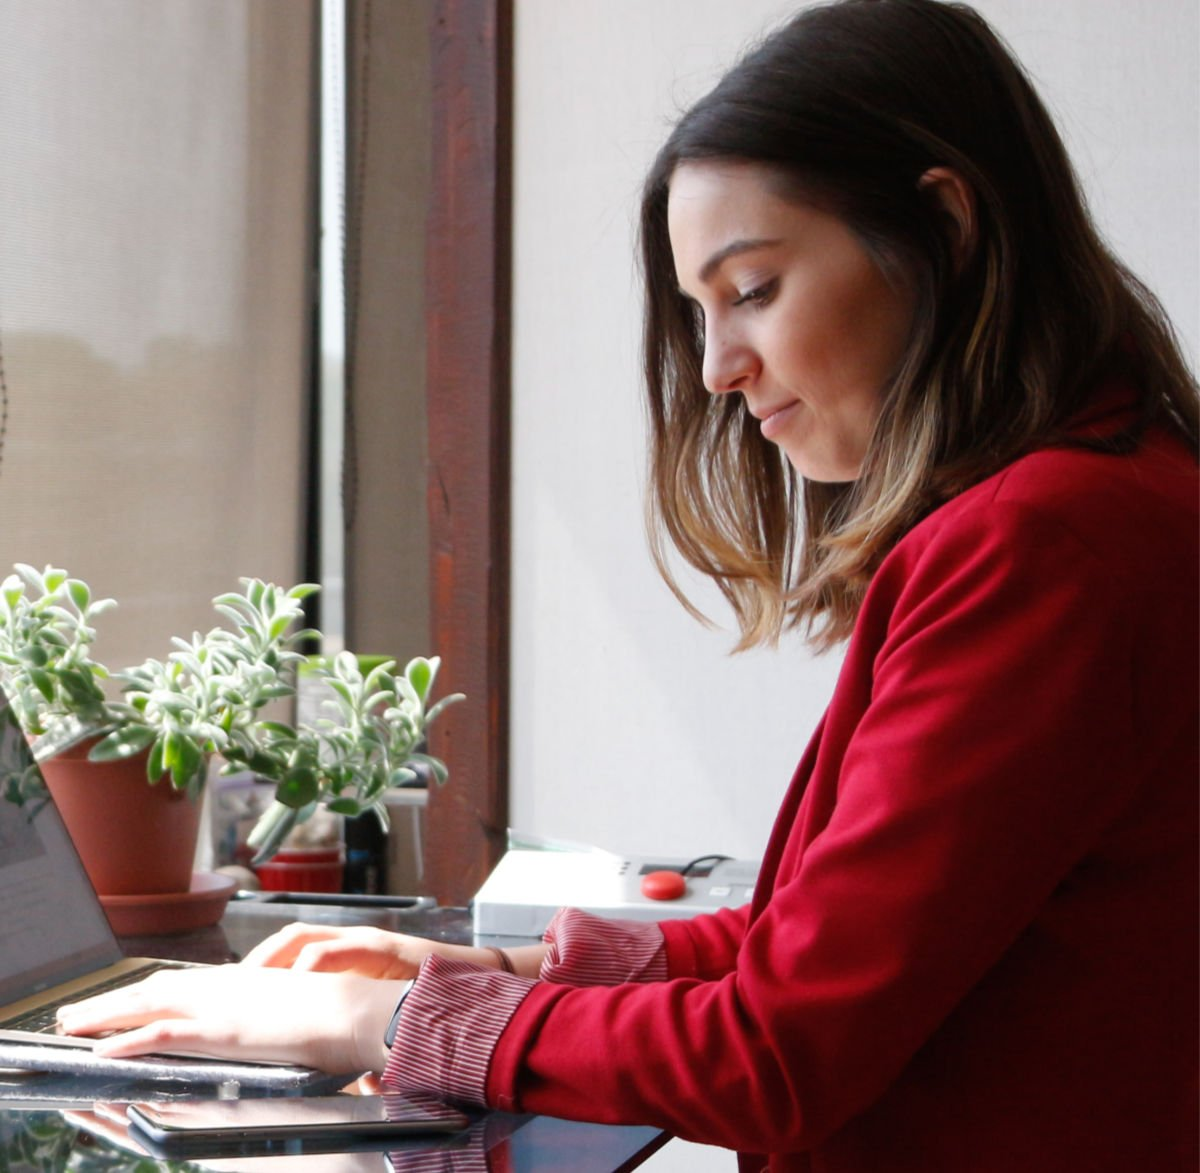 millennial woman smiling while working on laptop